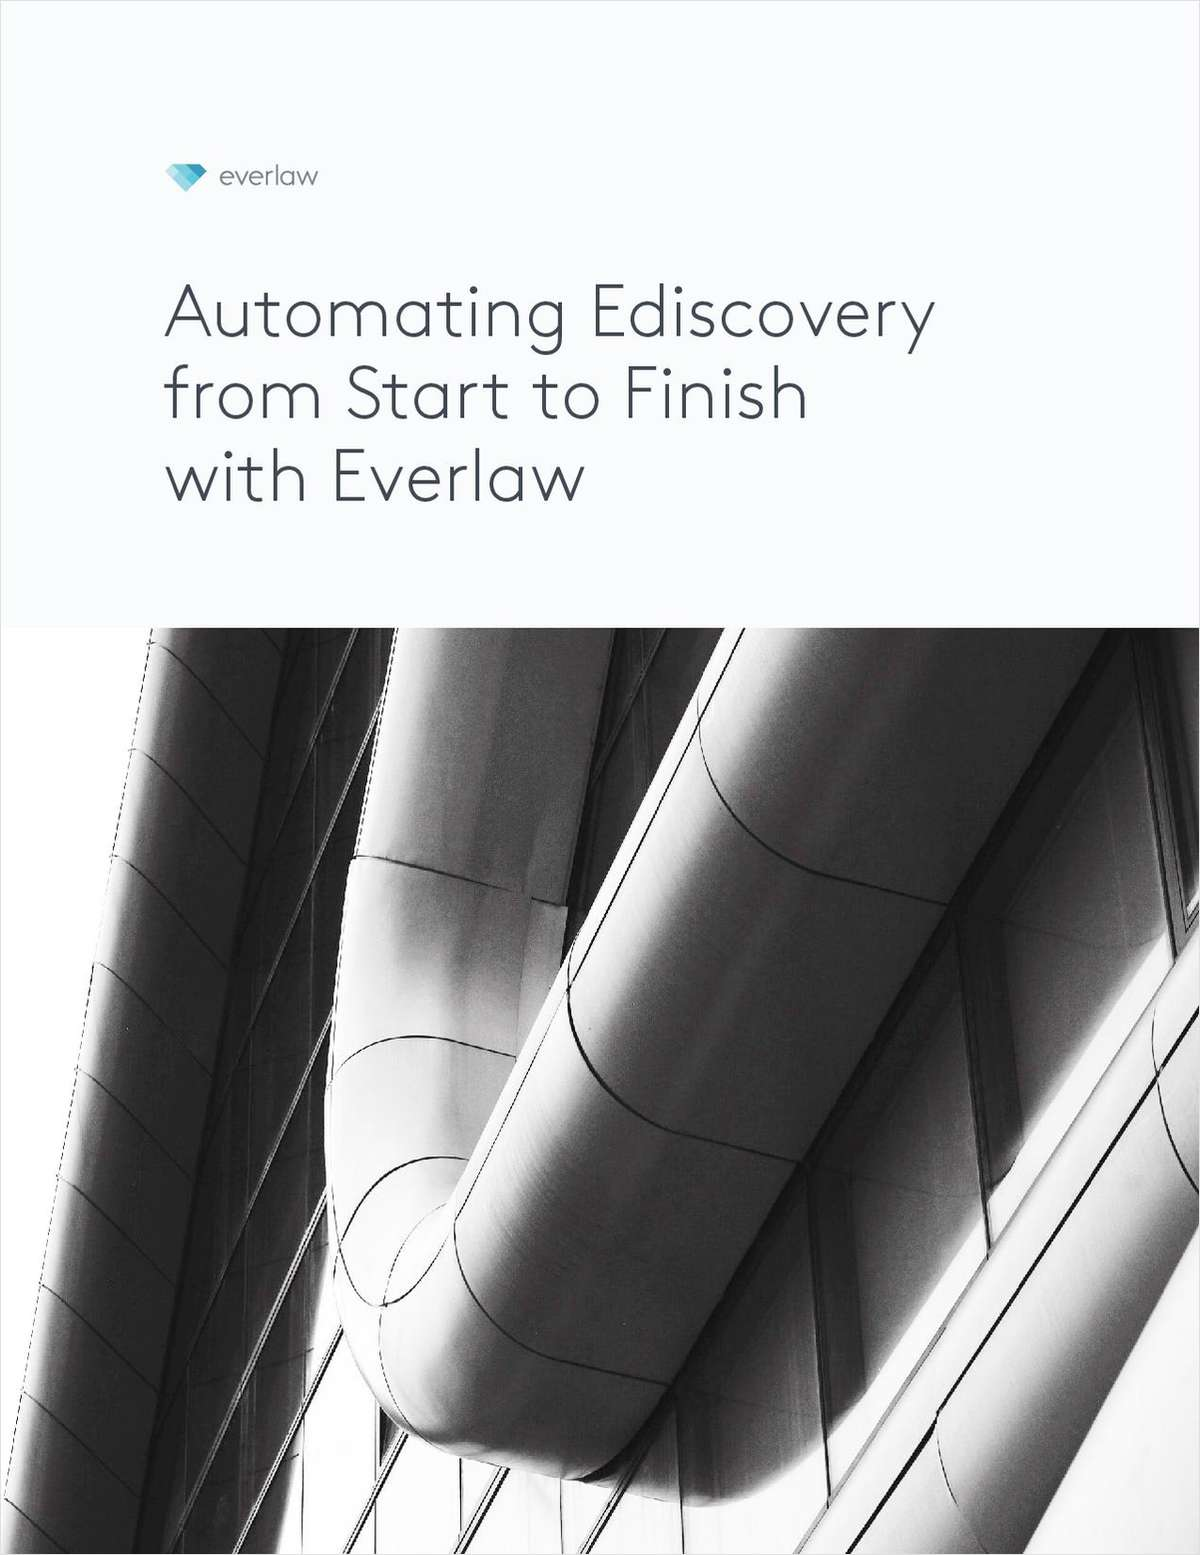 Automating Ediscovery from Start to Finish